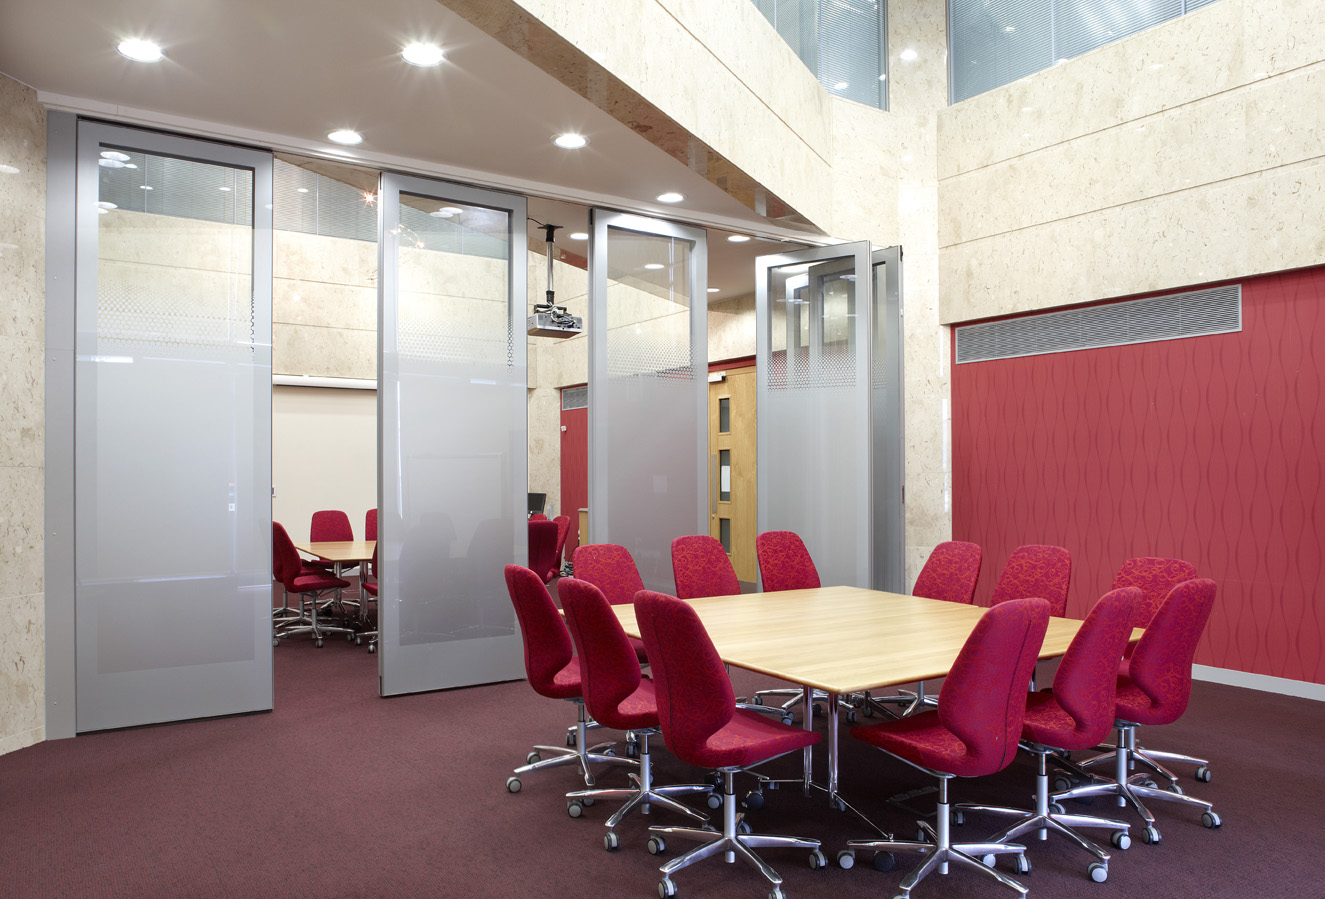 Seperated meeting rooms with glass partitioned walls